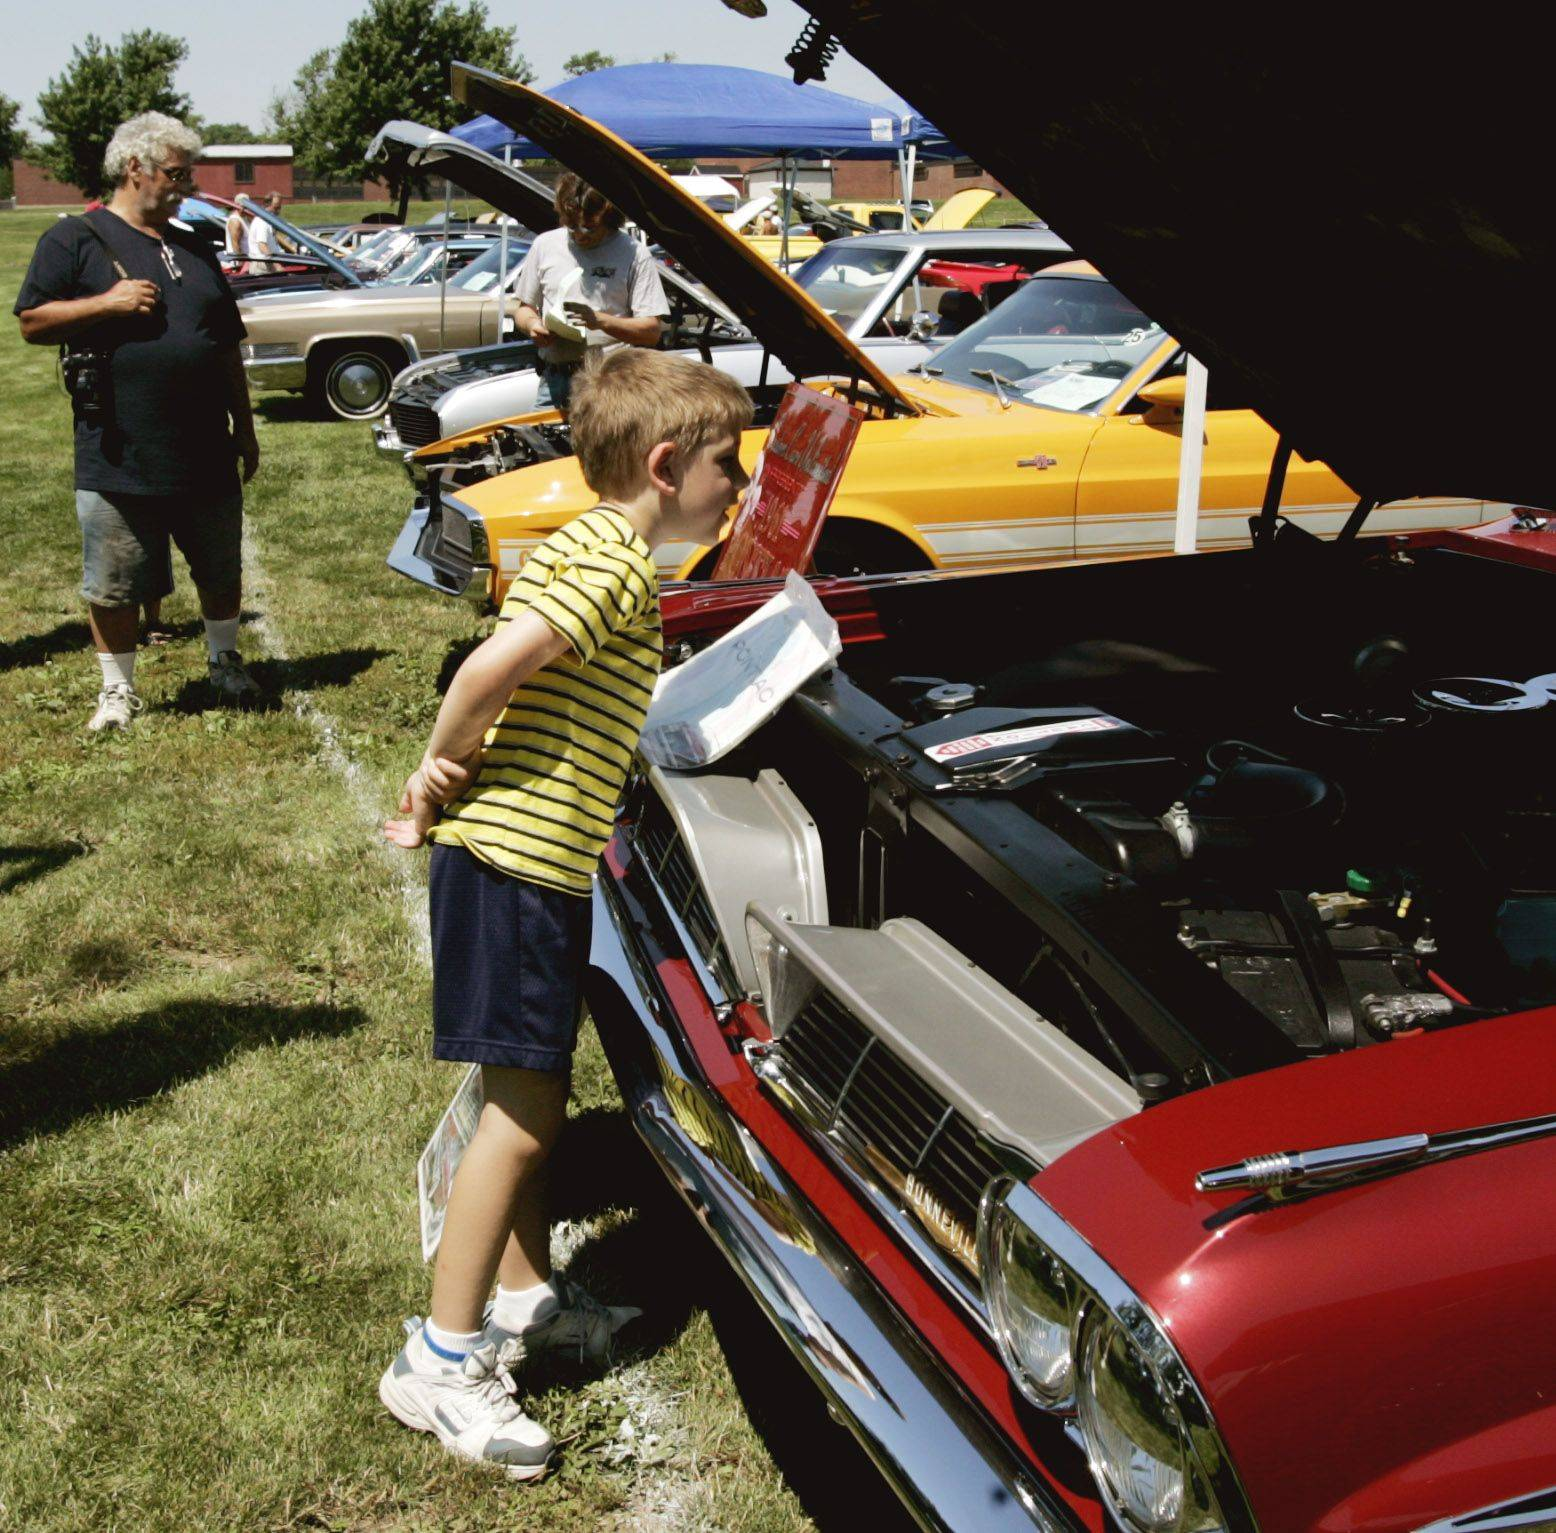 Events like the Glendale Heights Show and Shine Car Show are places to dream, reminisce and bond with fellow enthusiasts. About 200 vehicles are expected to compete in the show Sunday.